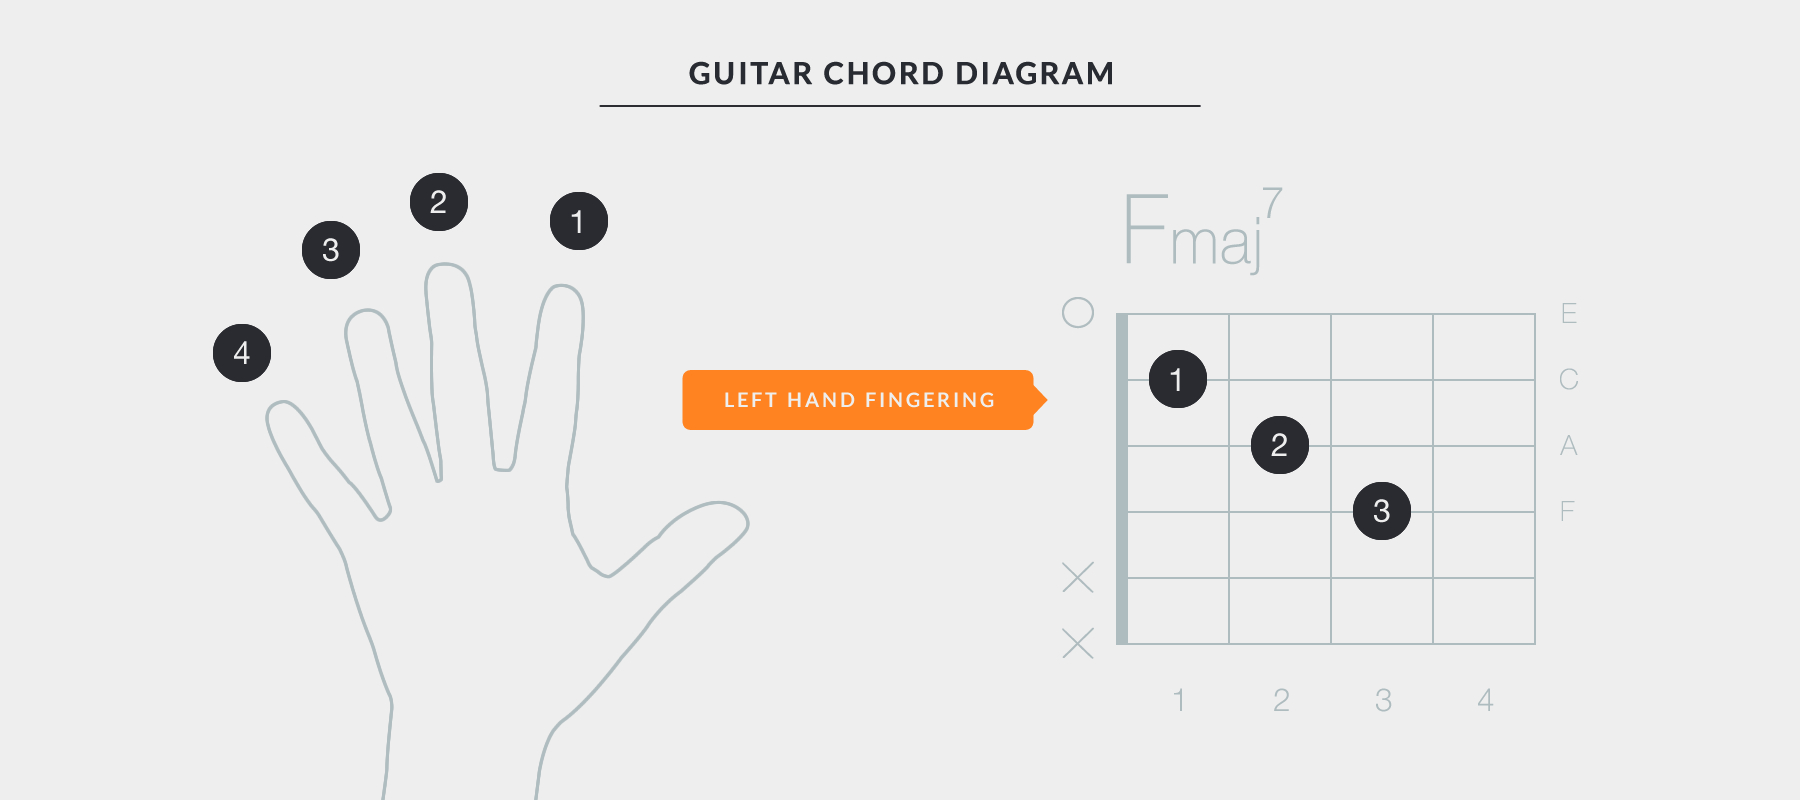 How To Play Guitar Chords 10 Tips How To Play The Guitar With Good Technique